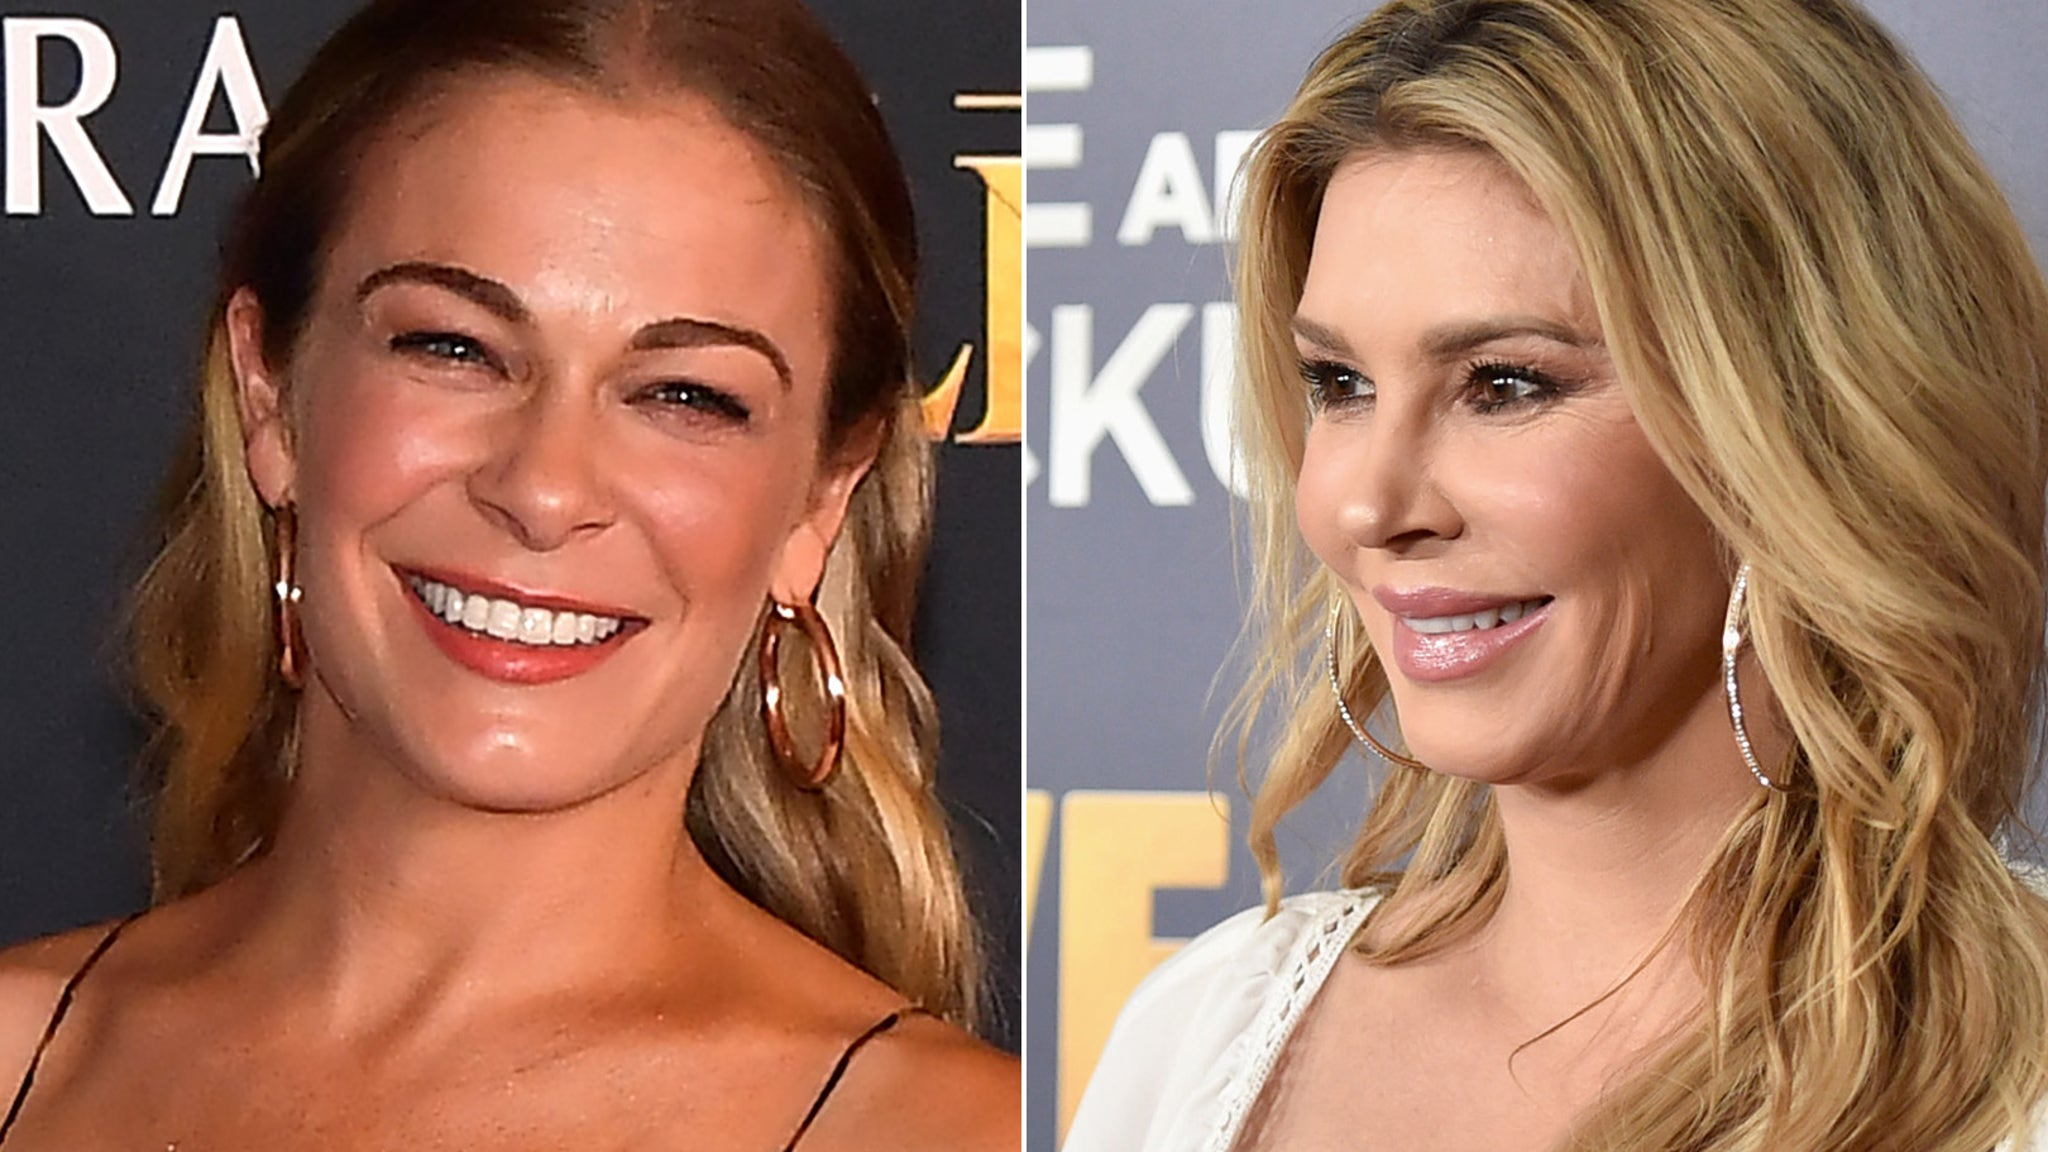 Brandi Glanville says she and LeAnn Rimes are like 'sister wives' now